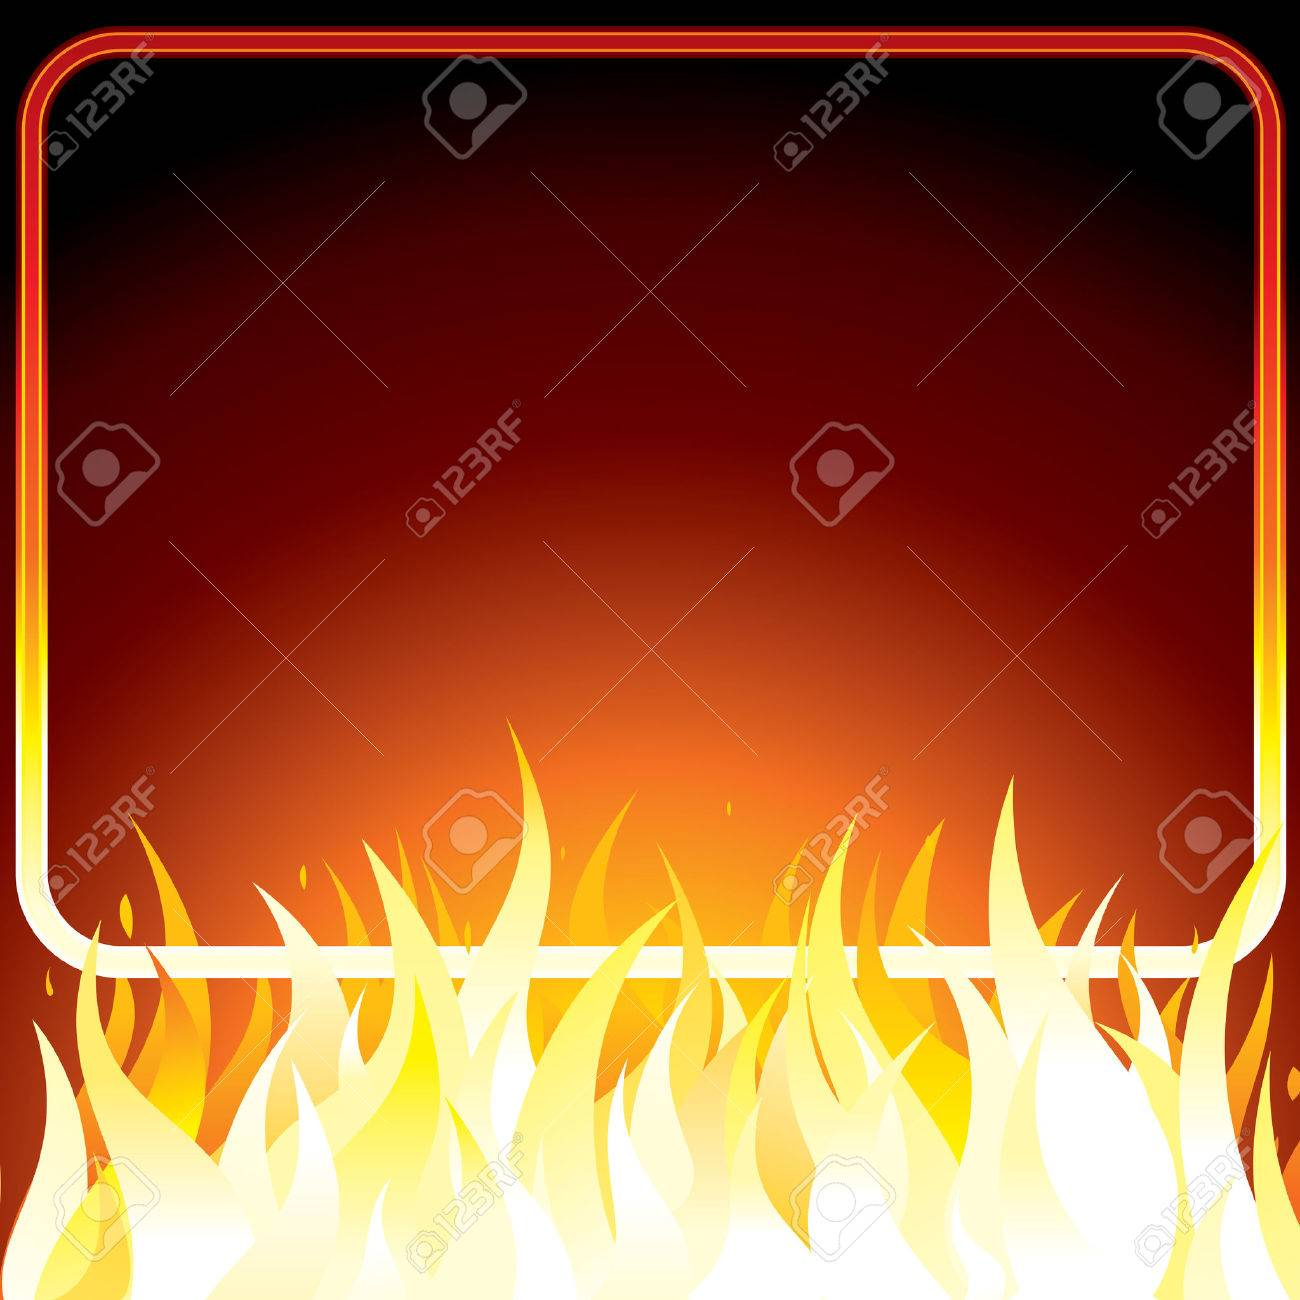 Poster design your own - Fire Poster With Frame For Your Own Text Or Design Background Stock Vector